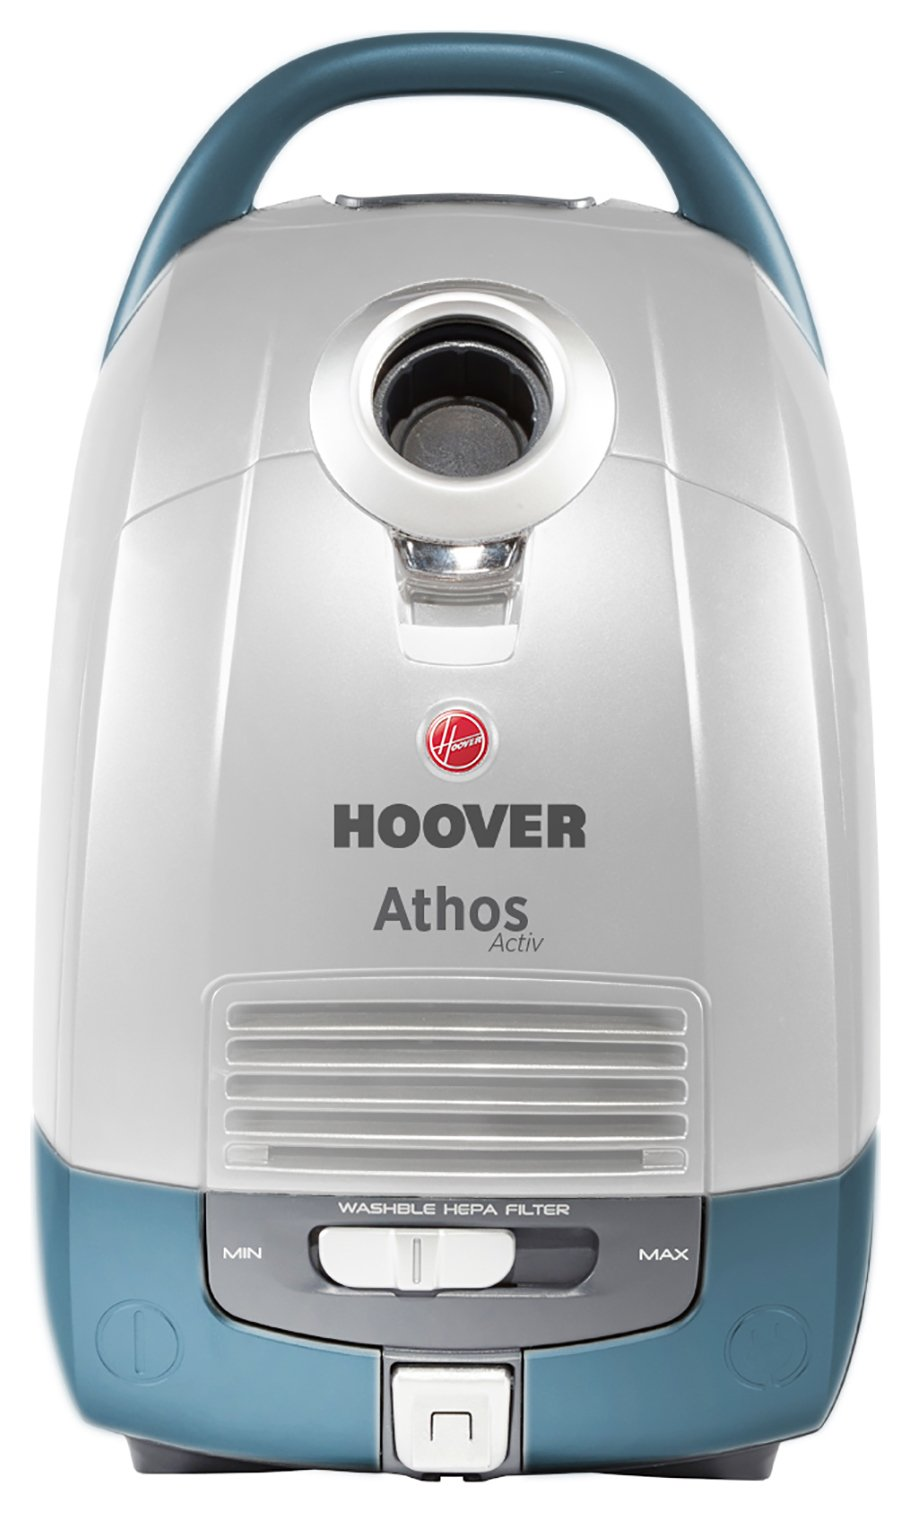 Image of Hoover Athos Activ Cordless Bagged Cylinder Vacuum Cleaner